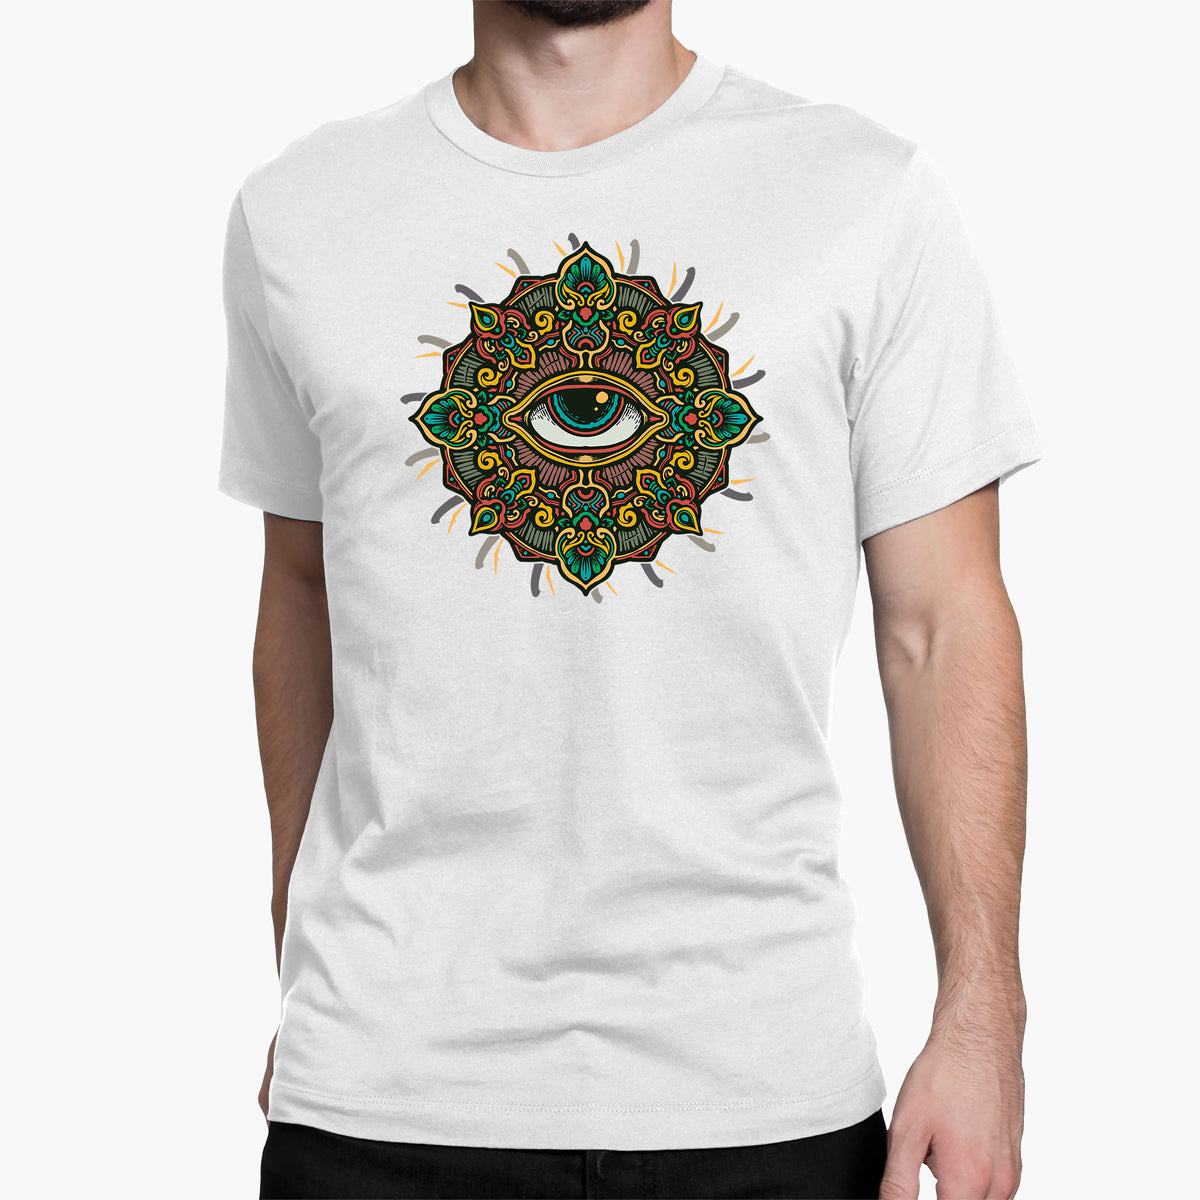 The All Seeing Eye Round-Neck Unisex T-Shirt